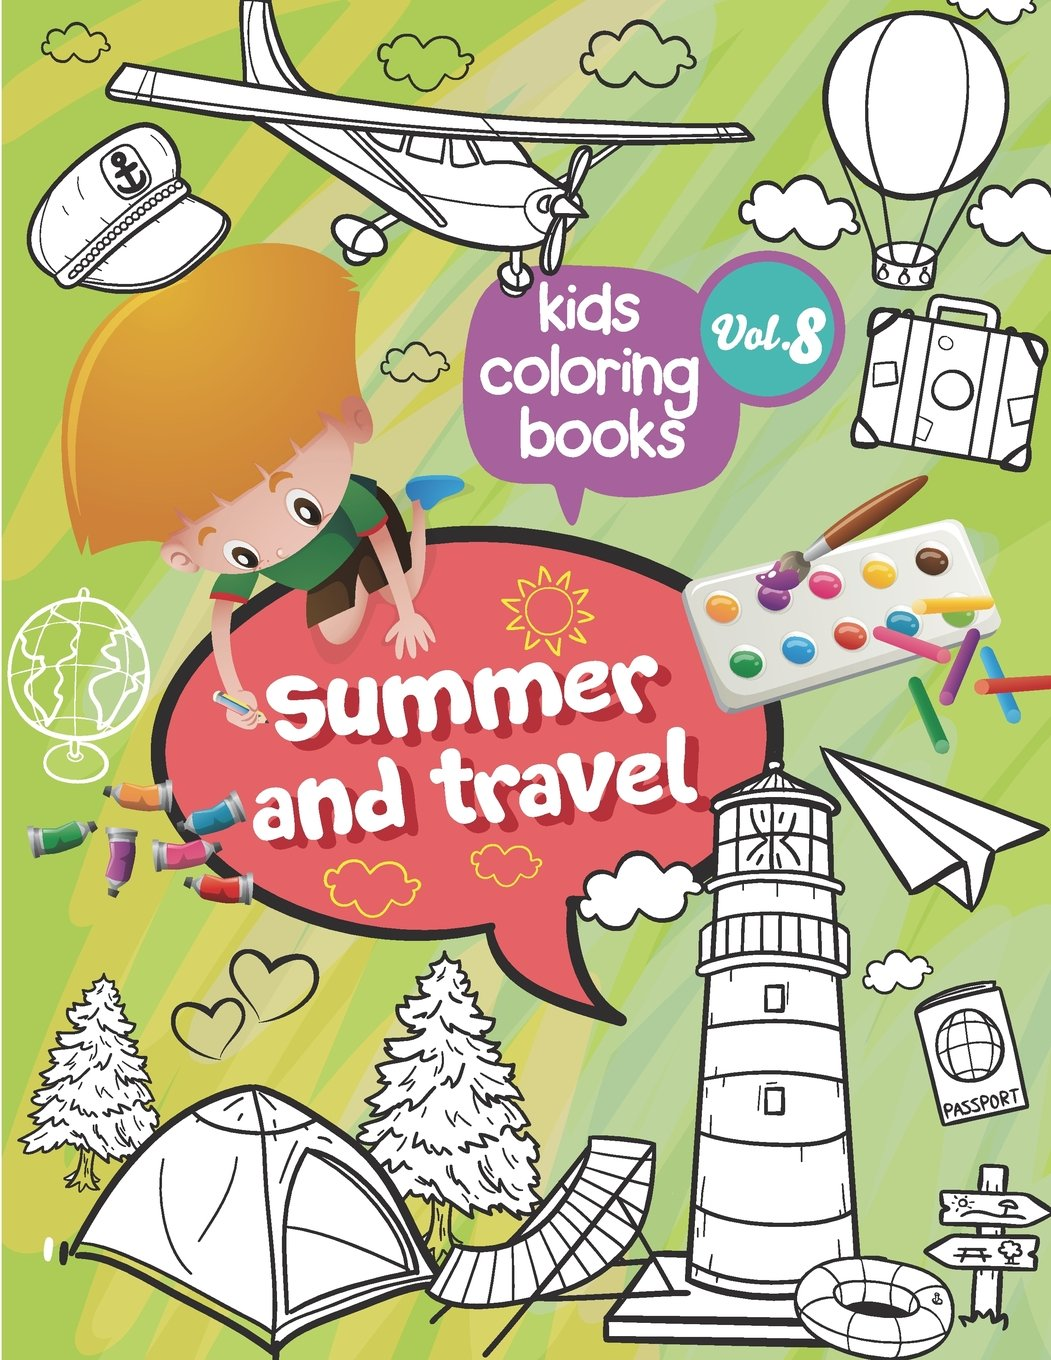 Kids coloring books Summer and travel: Kids coloring books Summer and travel : toddler coloring books Activity Books for Kids Ages 2-4, 4-8, Fun Early ... Workbook pre K (Large, 8.5 x 11 in.) pdf epub